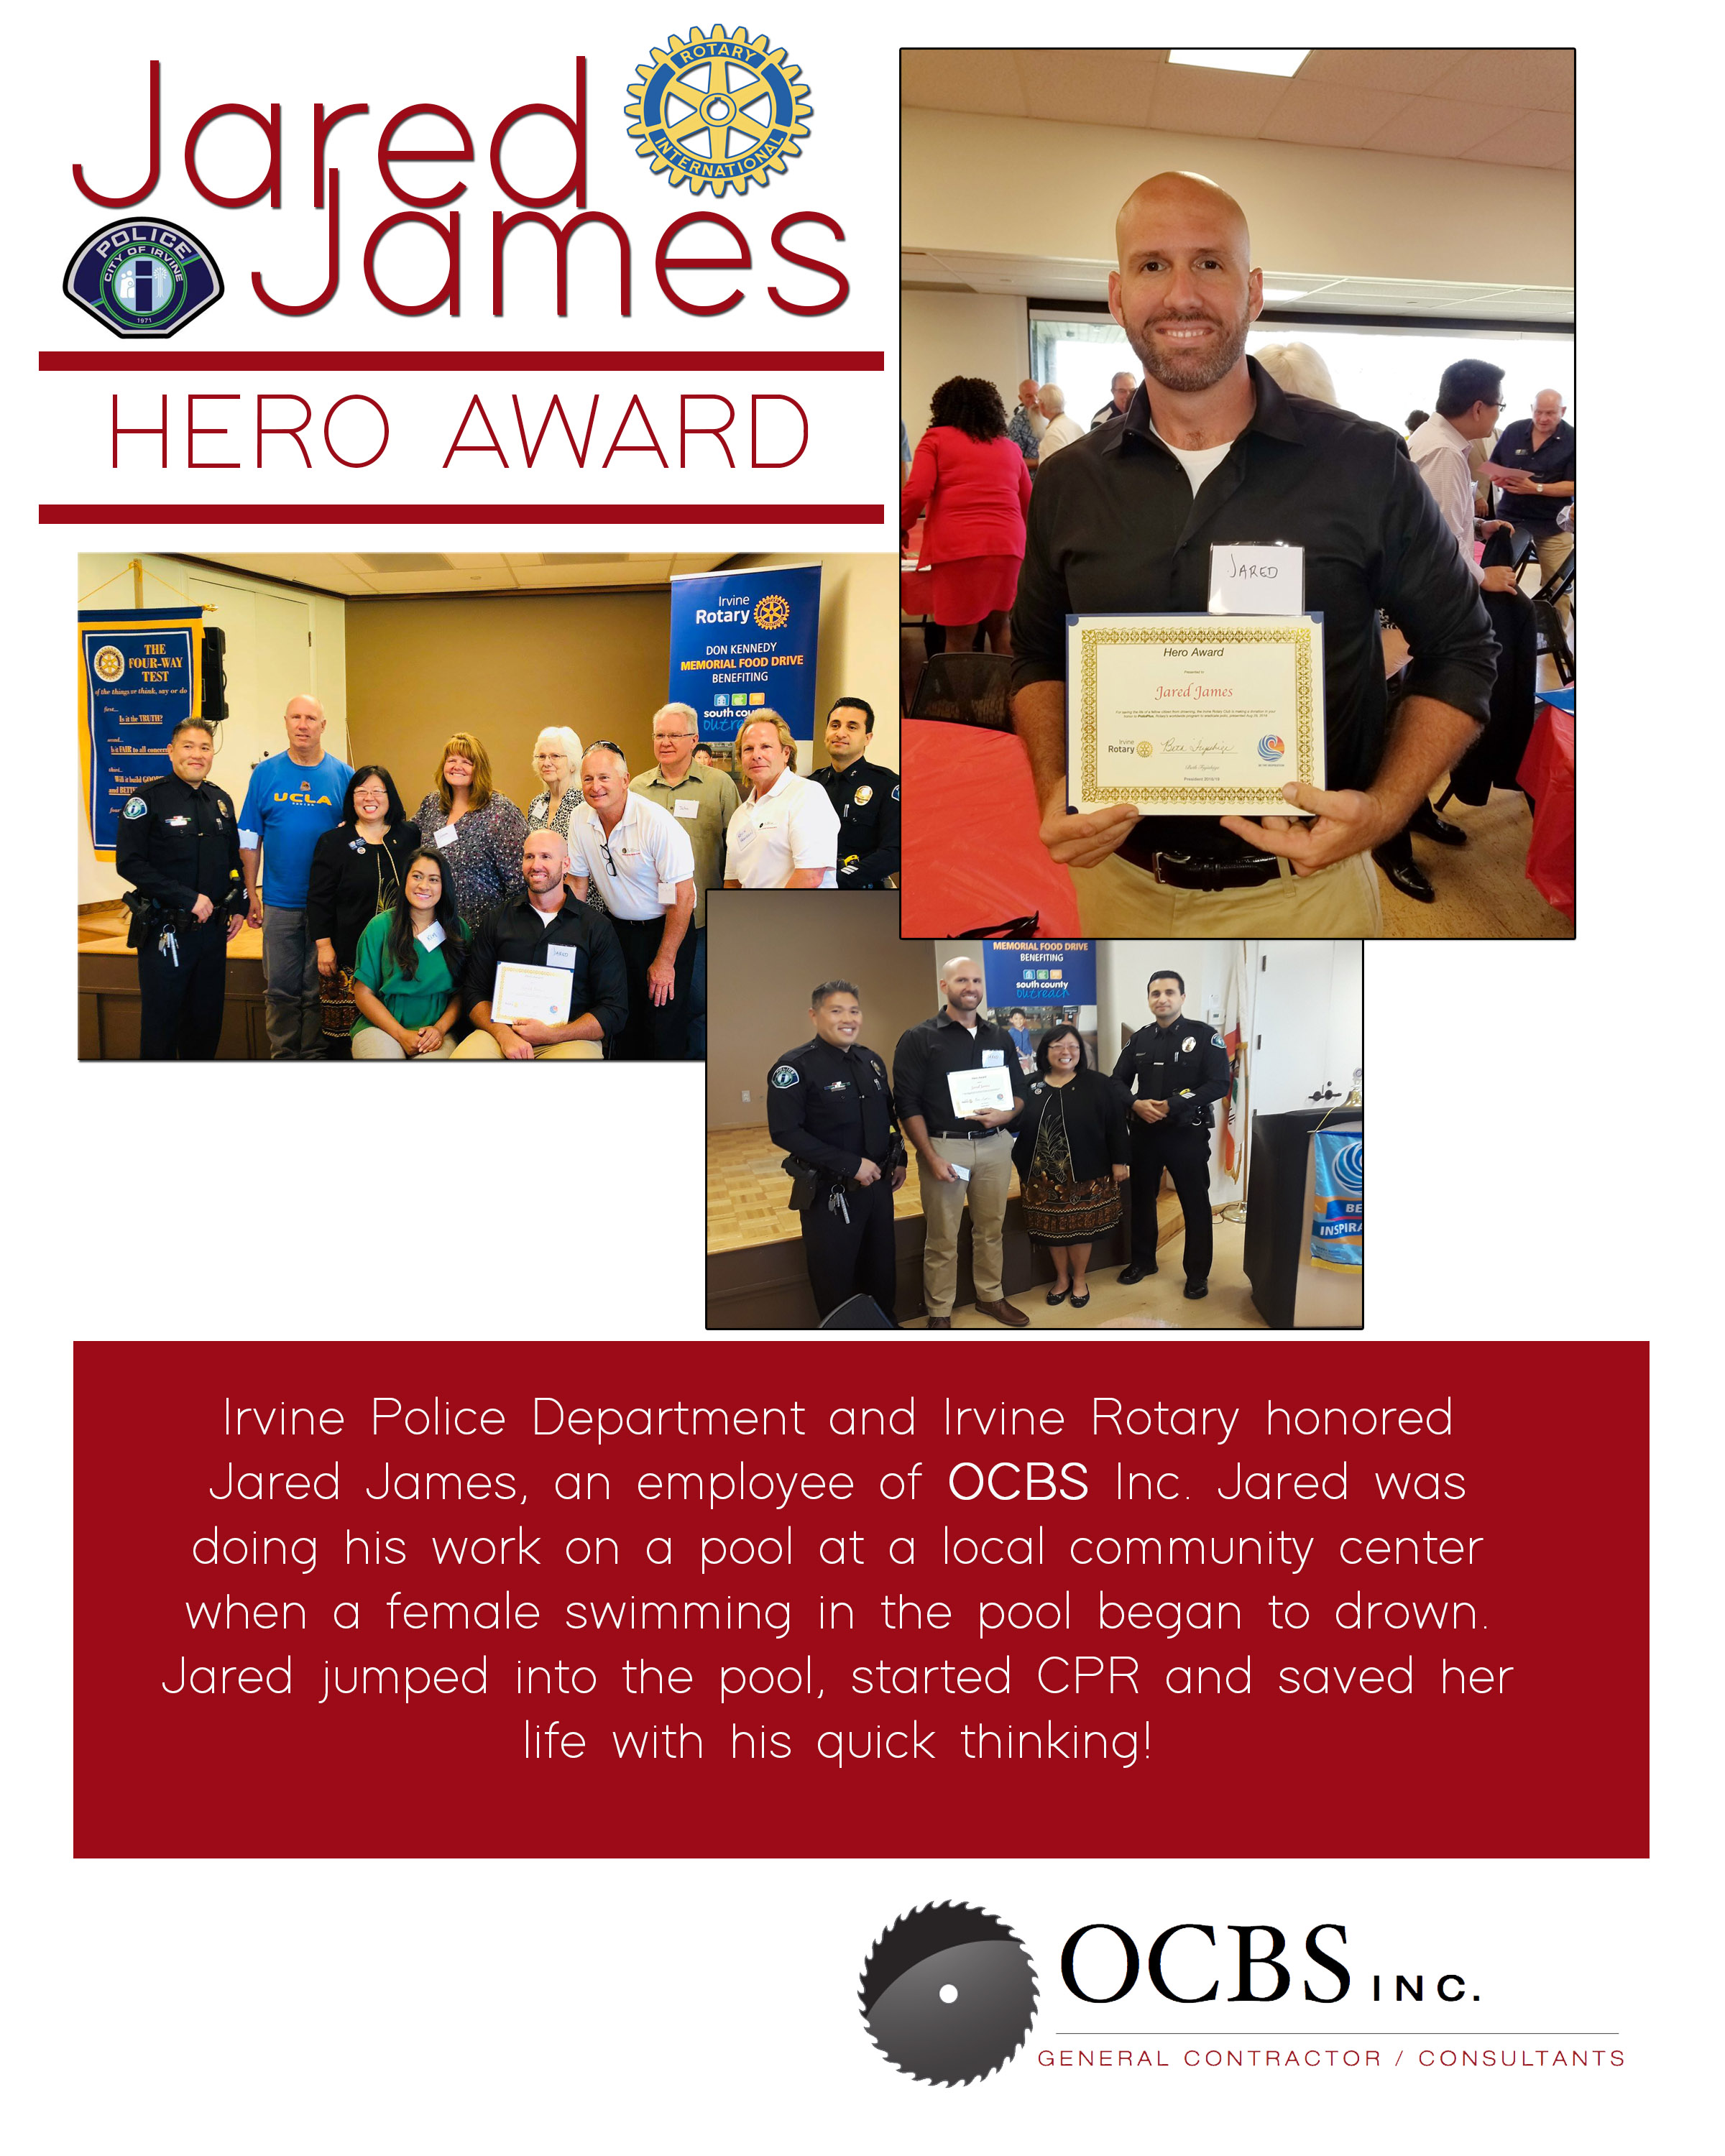 Irvine Police Department and Irvine Rotary honored Jared James, an employee of OCBS Inc. Jared was doing his work on a pool at a local community center when a female swimming in the pool began to drown. Jared jumped into the pool, started CPR and saved her life with his quick thinking!